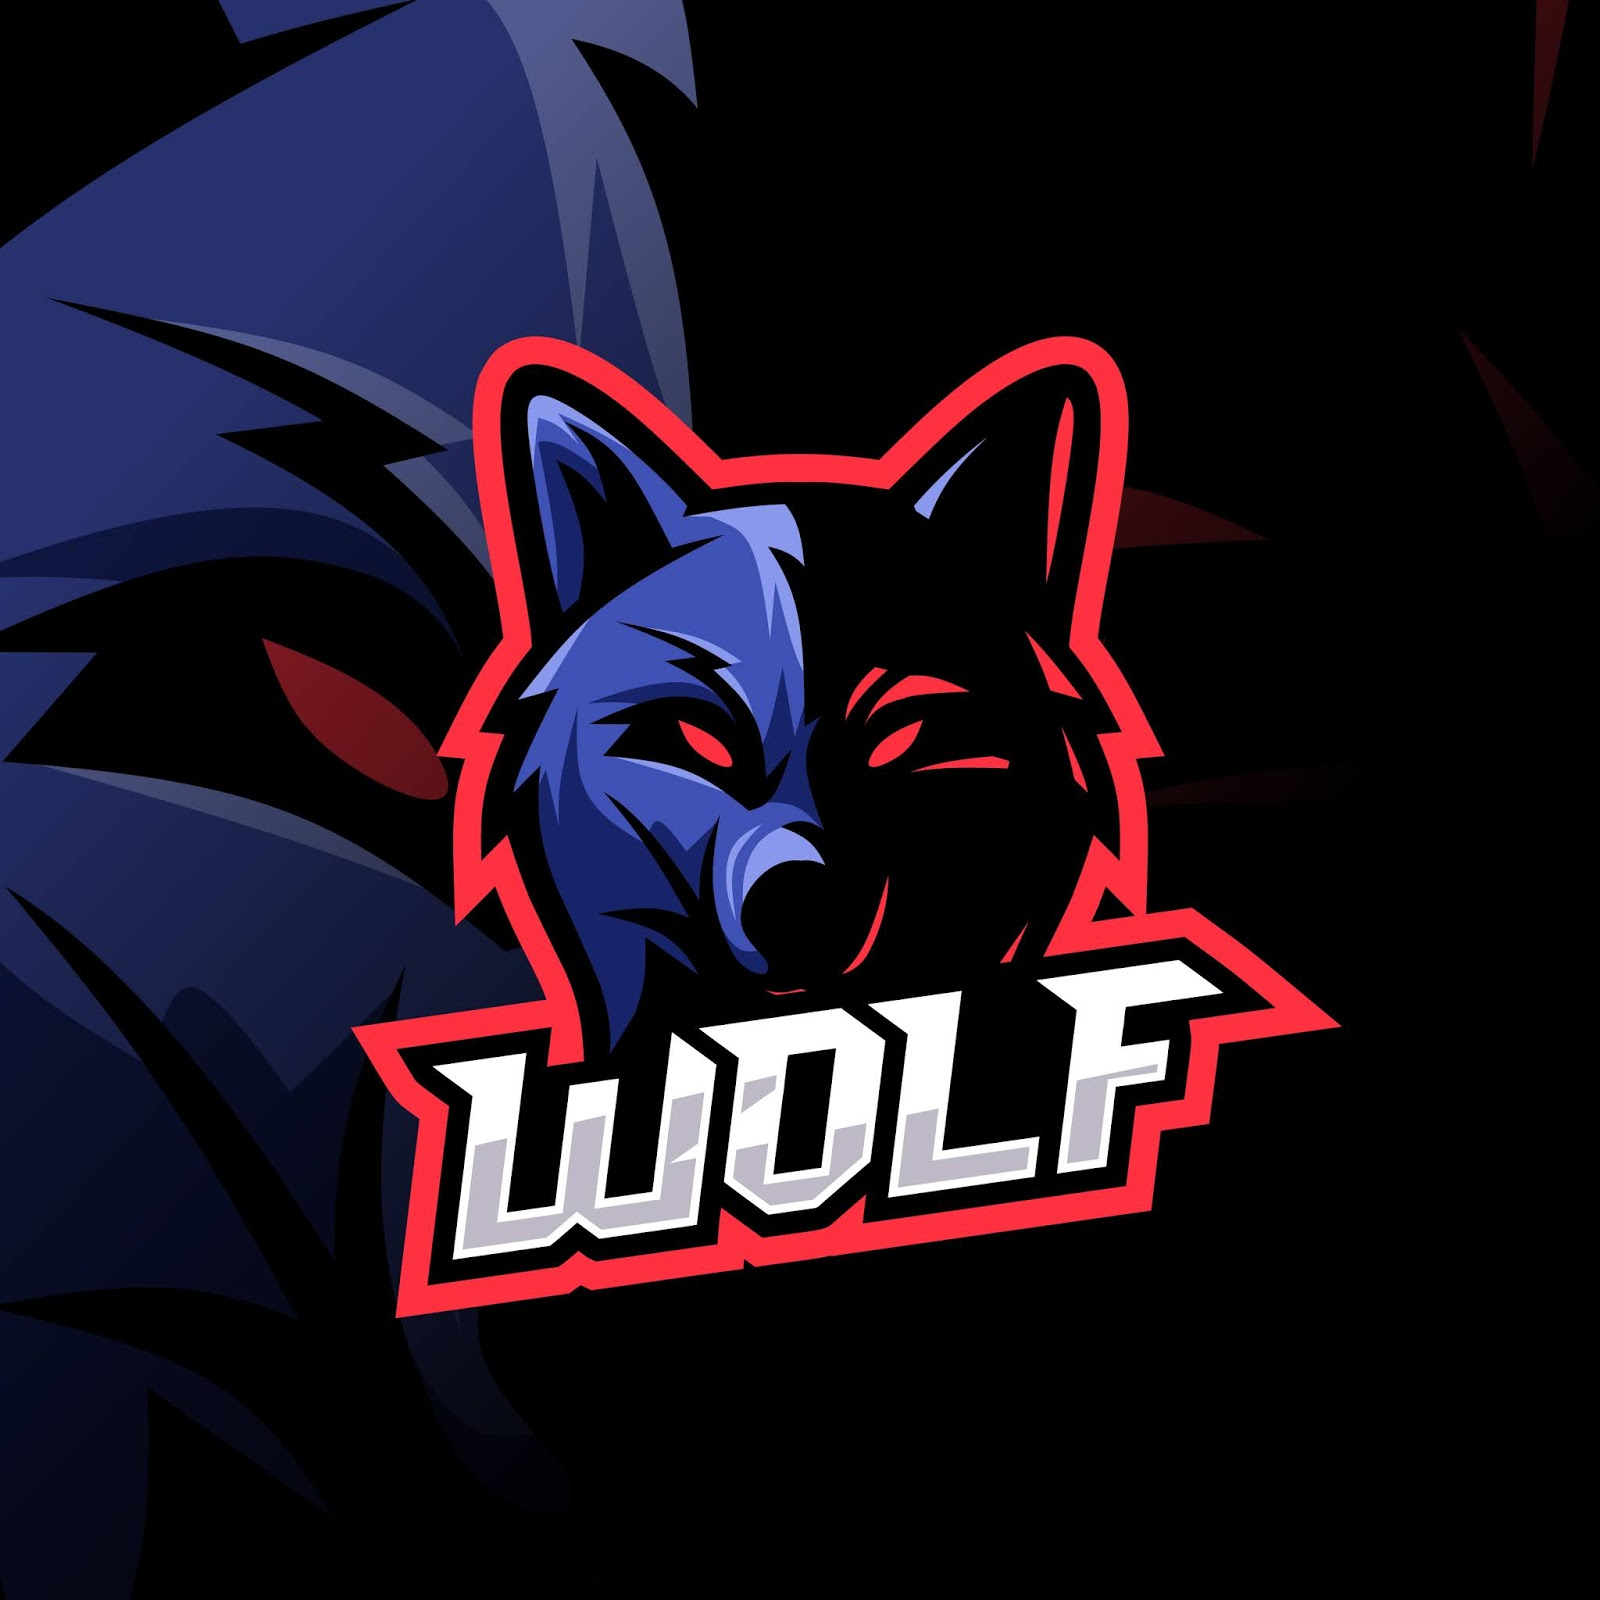 Wolf Esport Logo Awesome Free Download Vector CDR, AI, EPS and PNG Formats